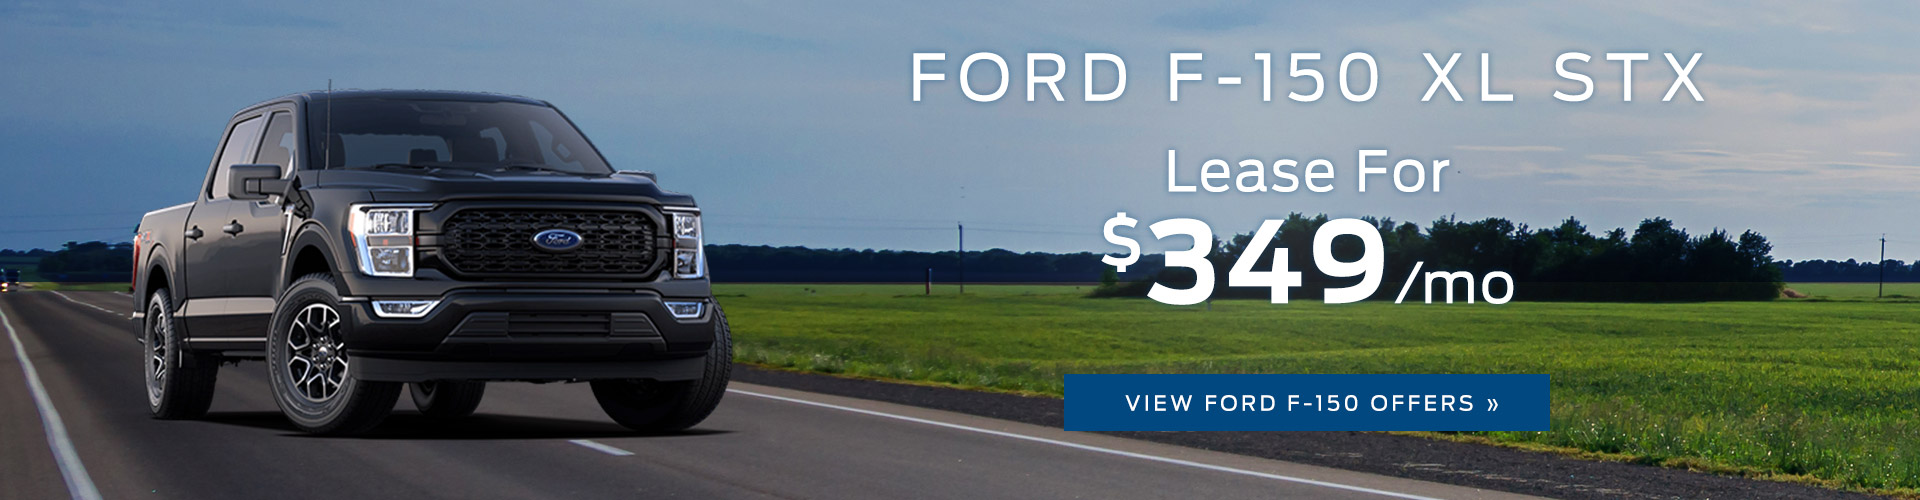 Ford F-150 Offers at Anderson Ford of Grand Island